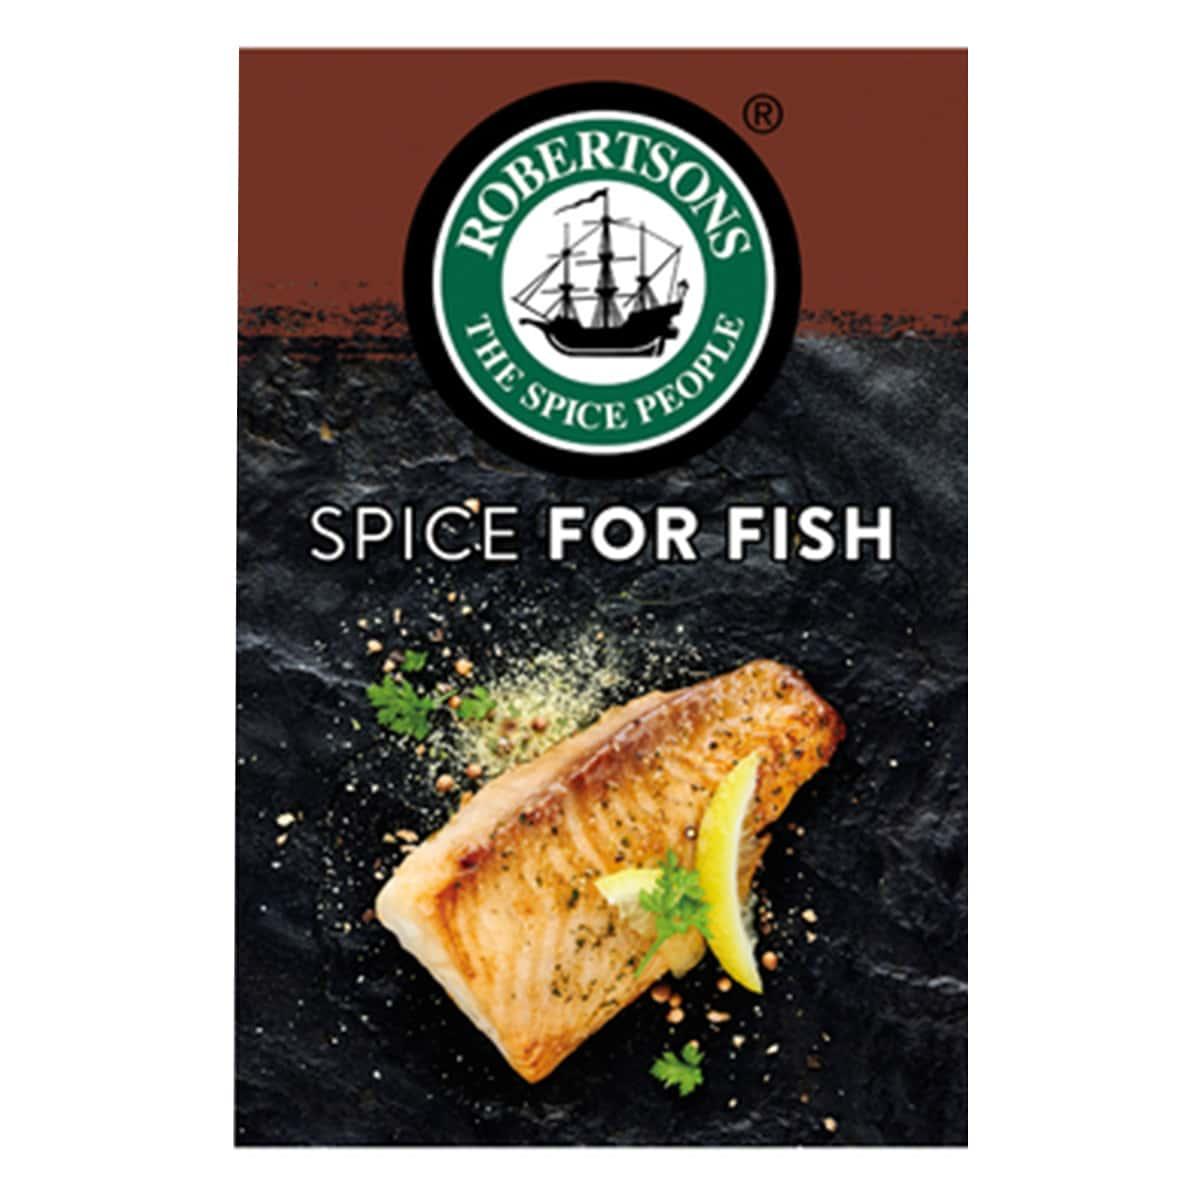 Buy Robertsons Spice for Fish - 80 gm